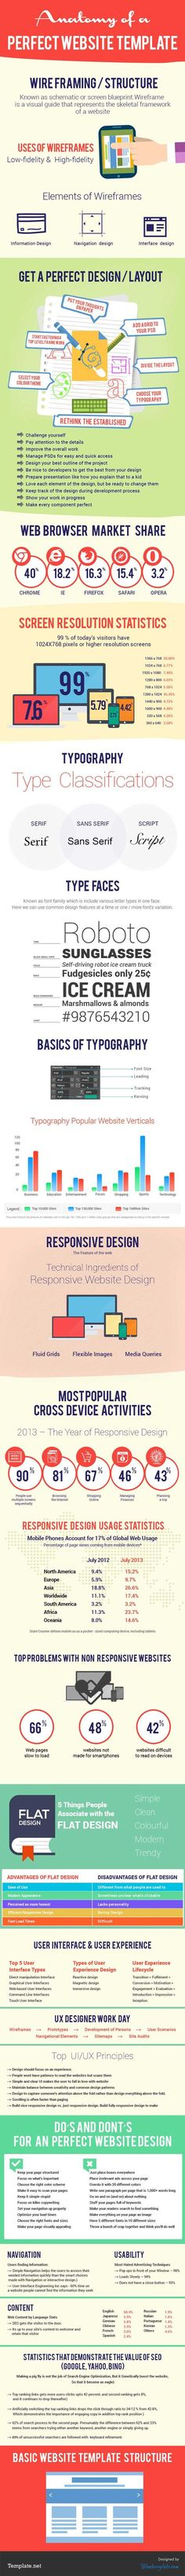 websitetemplate1: